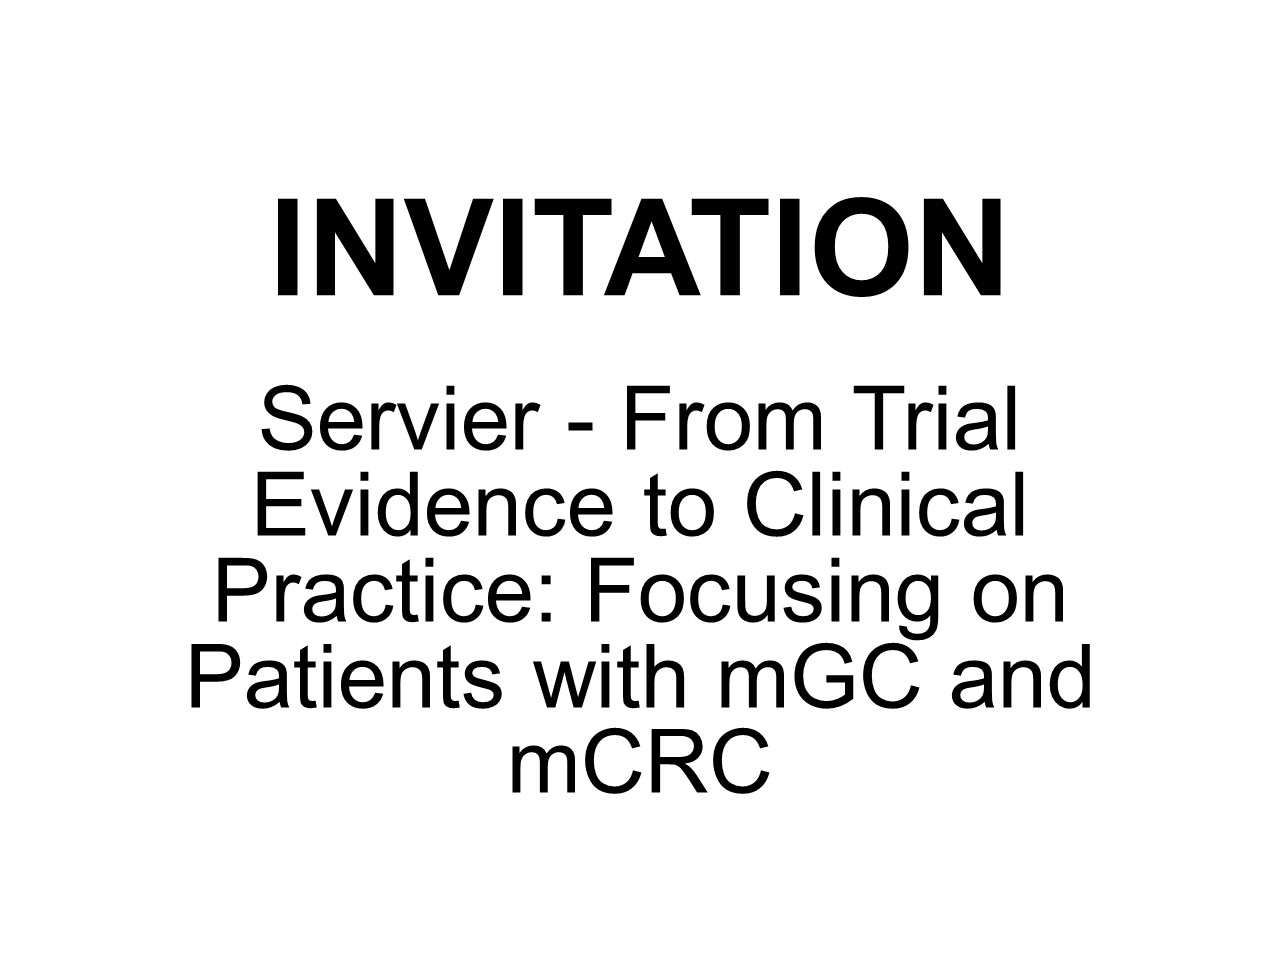 Servier: From Trial Evidence to Clinical Practice